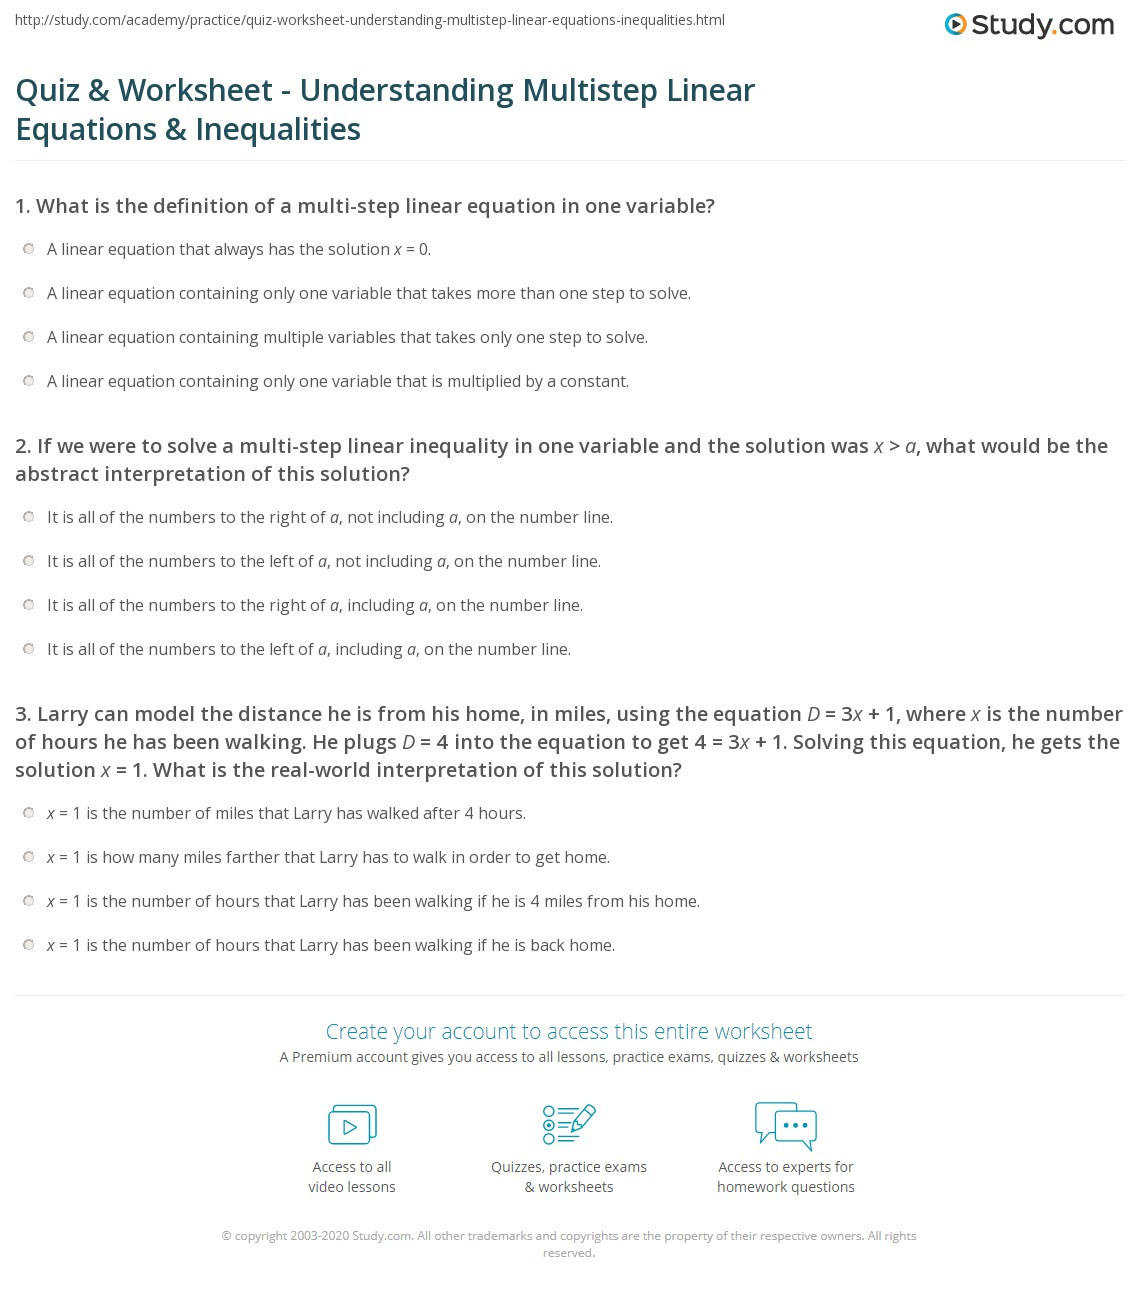 Worksheets Linear Equations And Inequalities Worksheet equations and inequalities worksheet delibertad linear delibertad